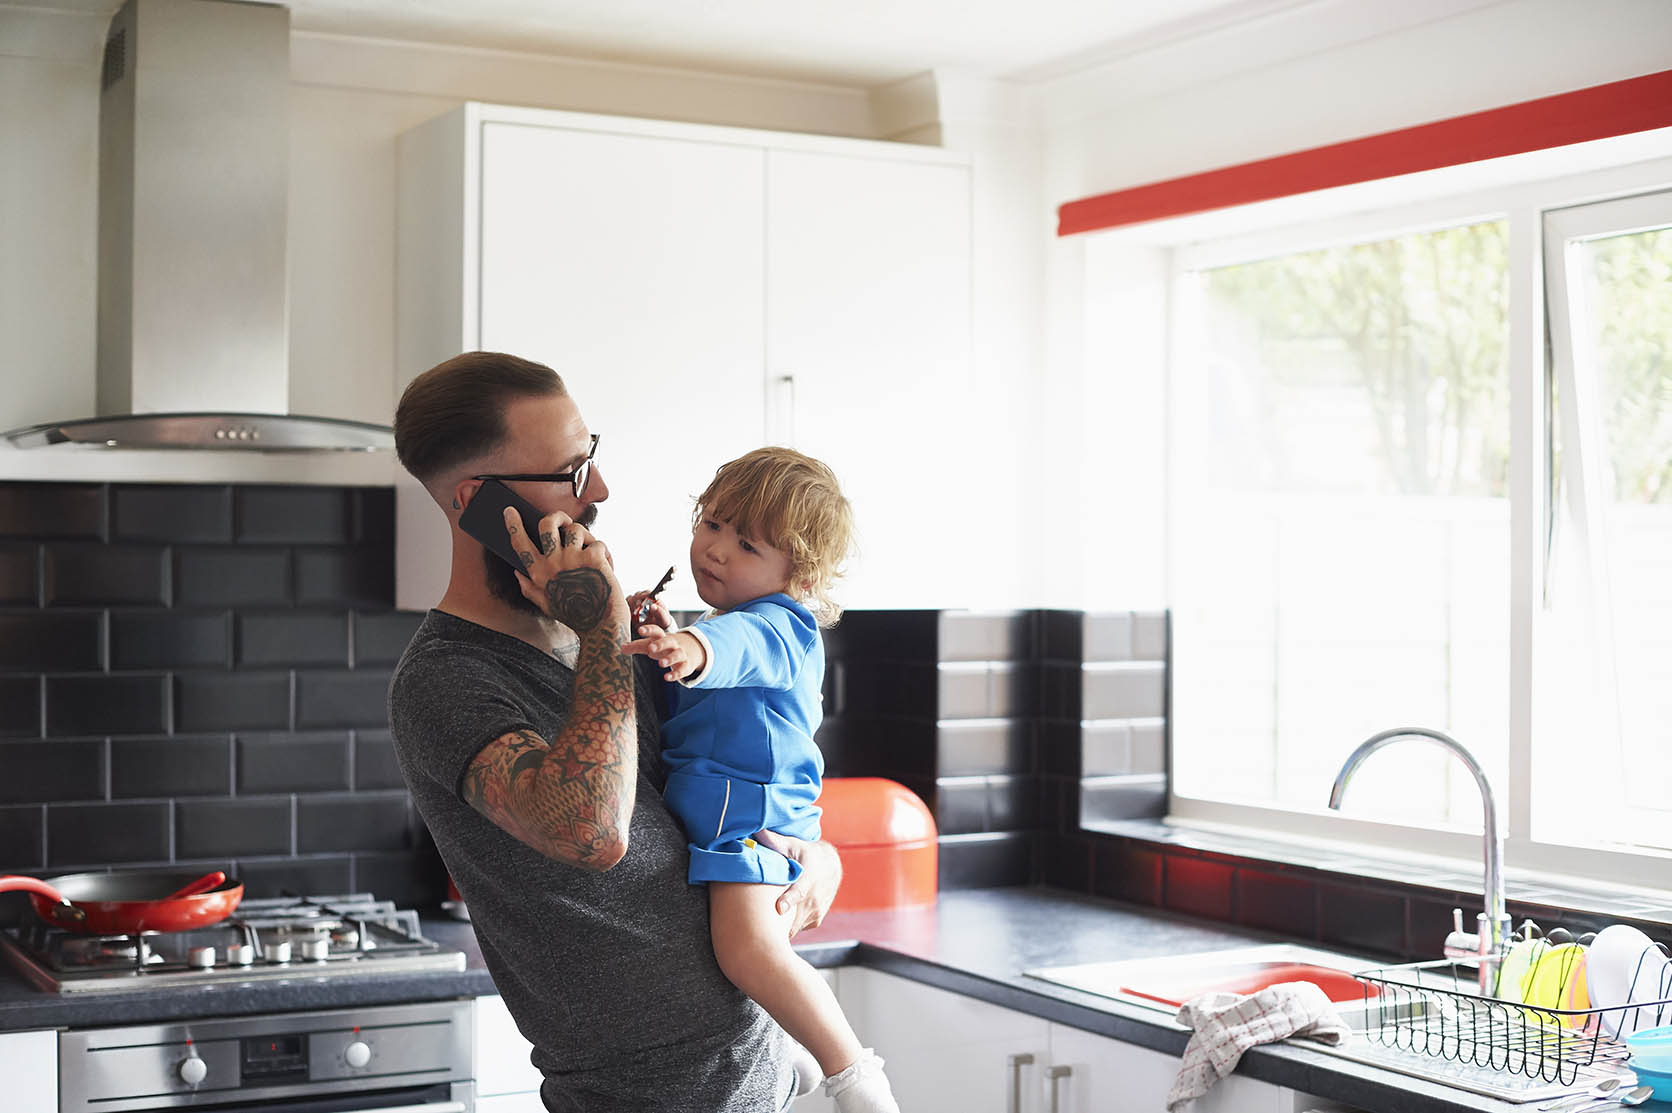 Young dad making phone call while holding a toddler